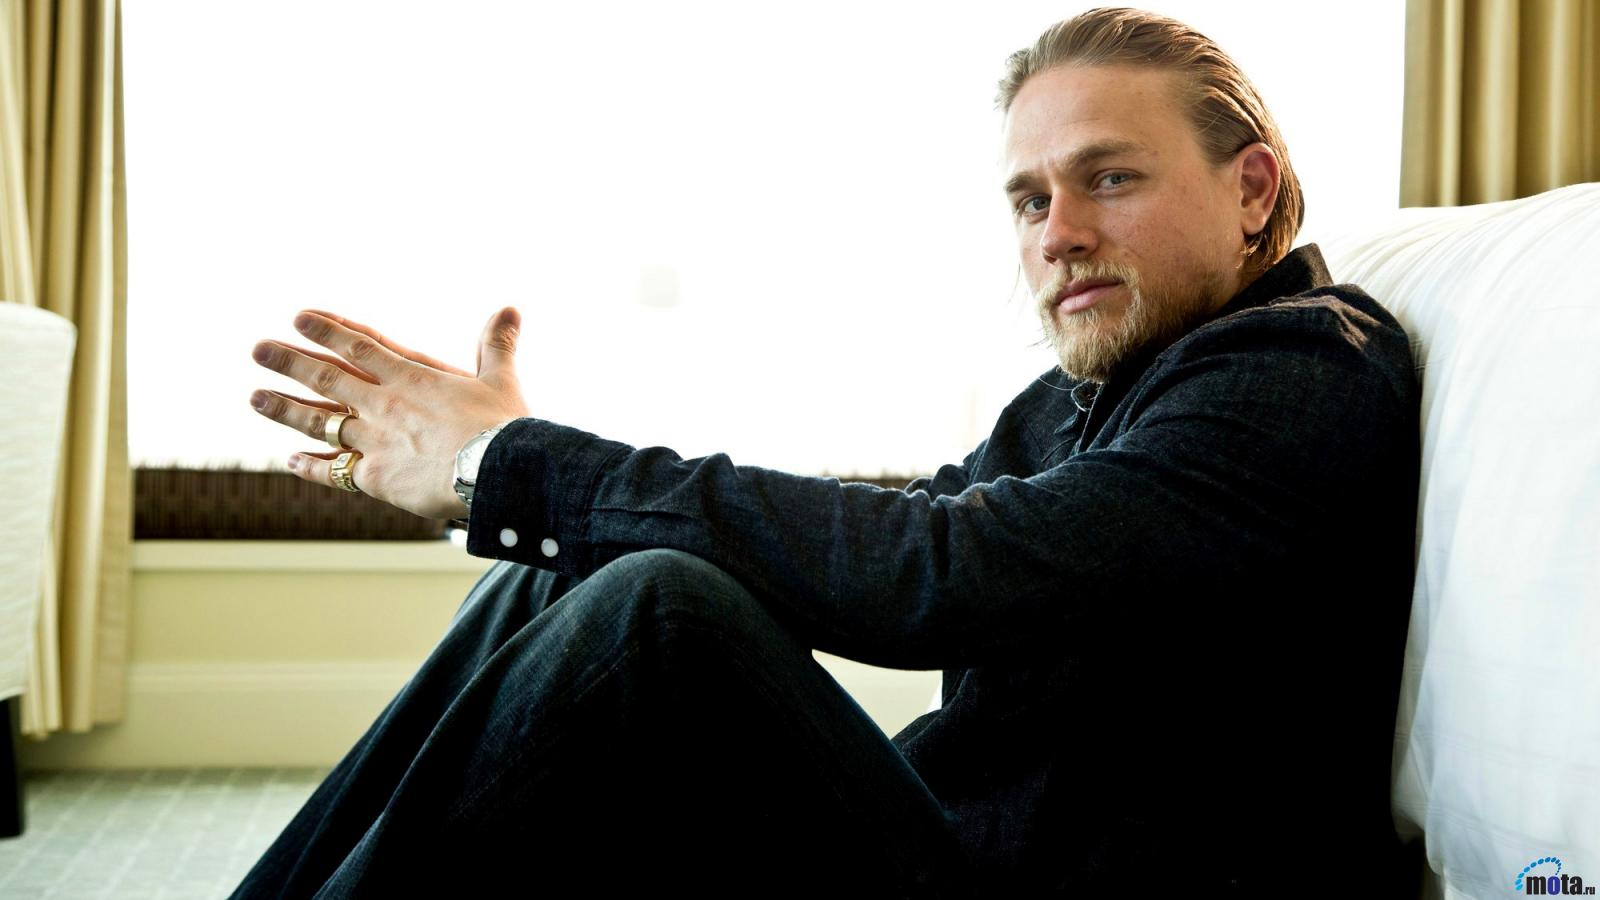 Download wallpaper Actor Charlie Hunnam 1600x900